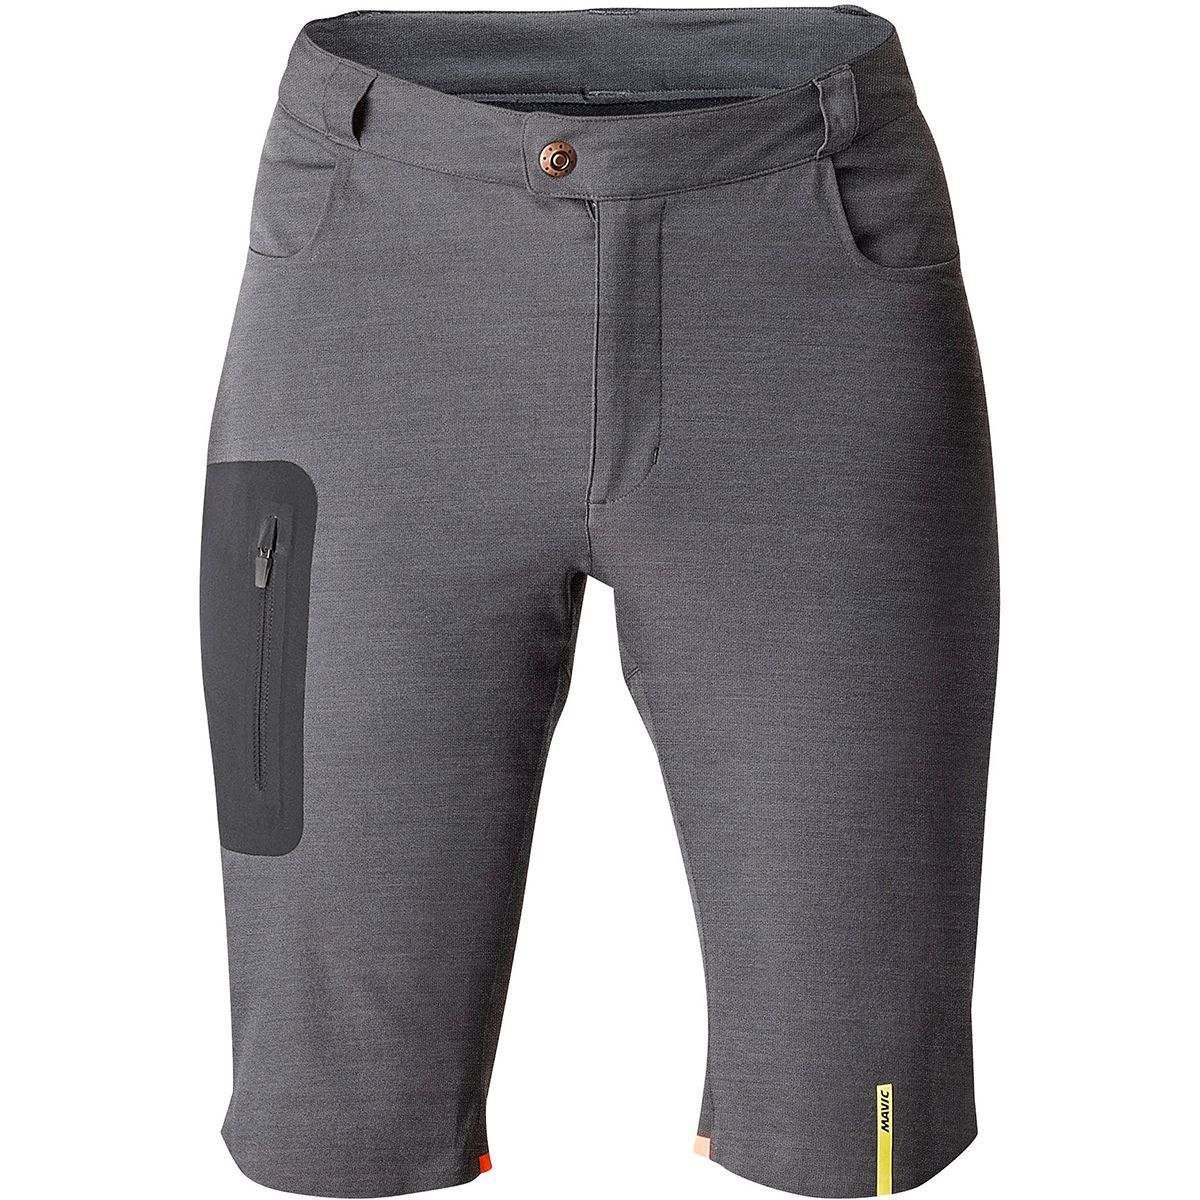 ALLROAD FITTED BAGGY SHORT Gravel Bikeshorts